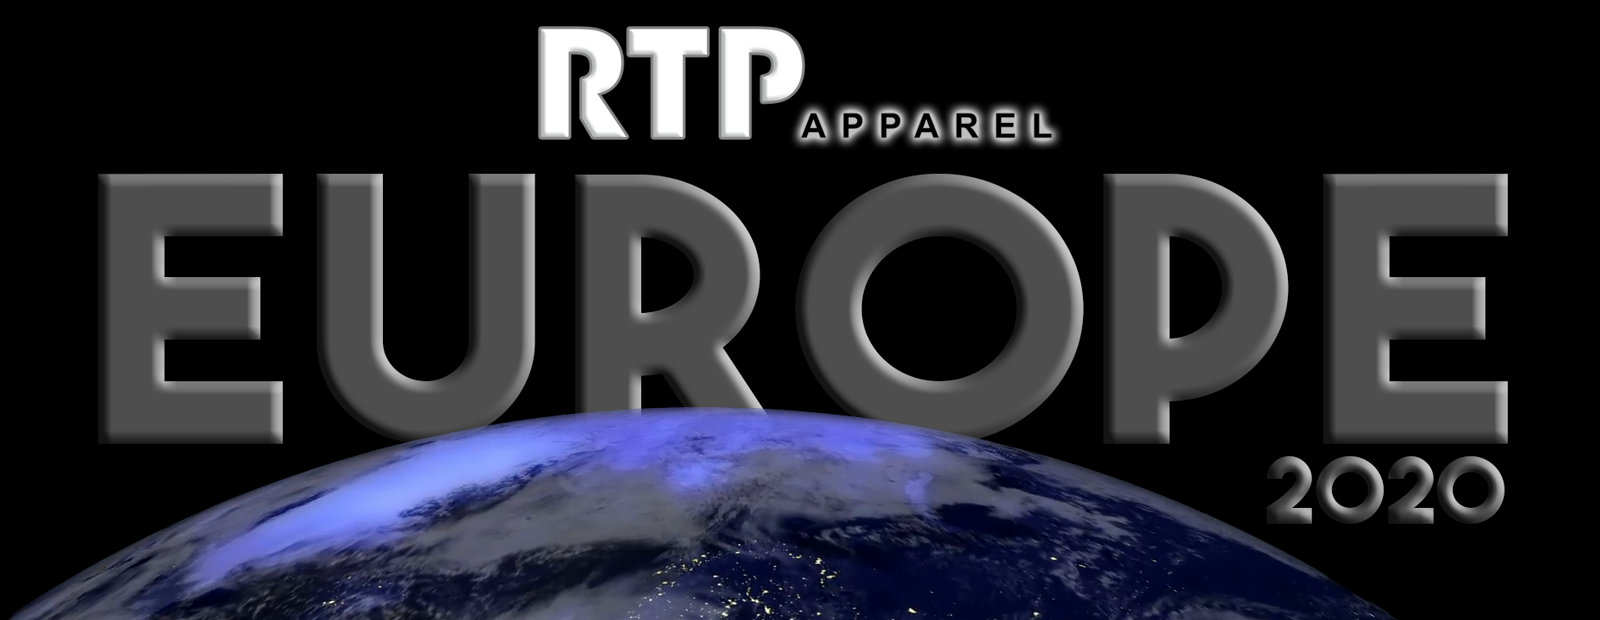 RTP Apparel Coming to Europe in 2020